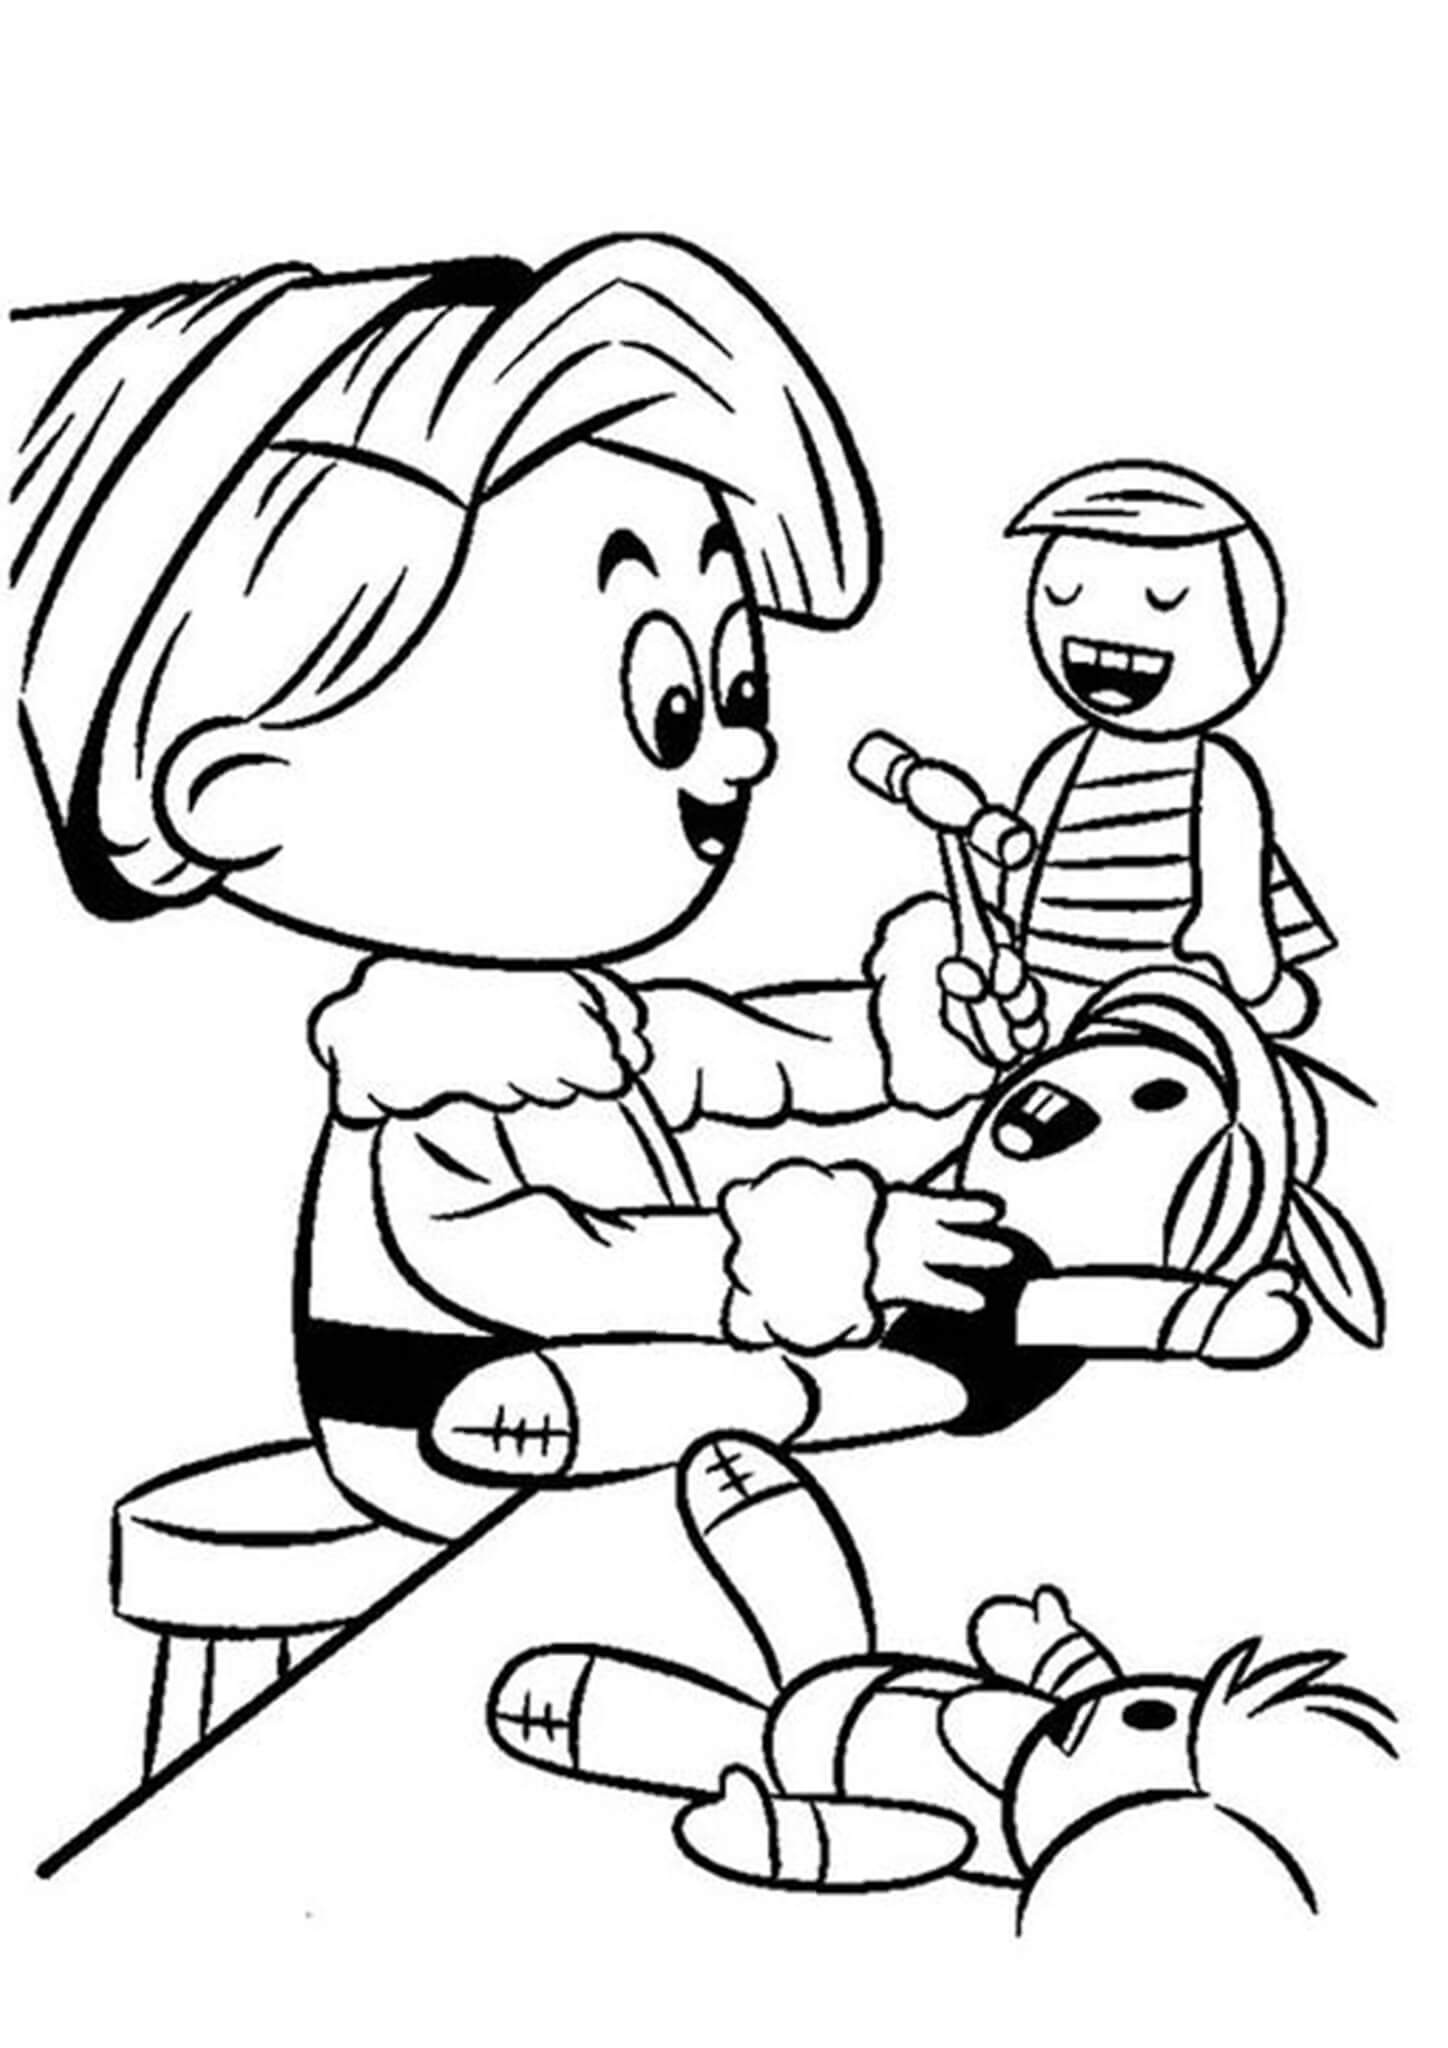 Fun Elf coloring pages for your little one. They are free and easy to print. The collection is varied with different skill levels